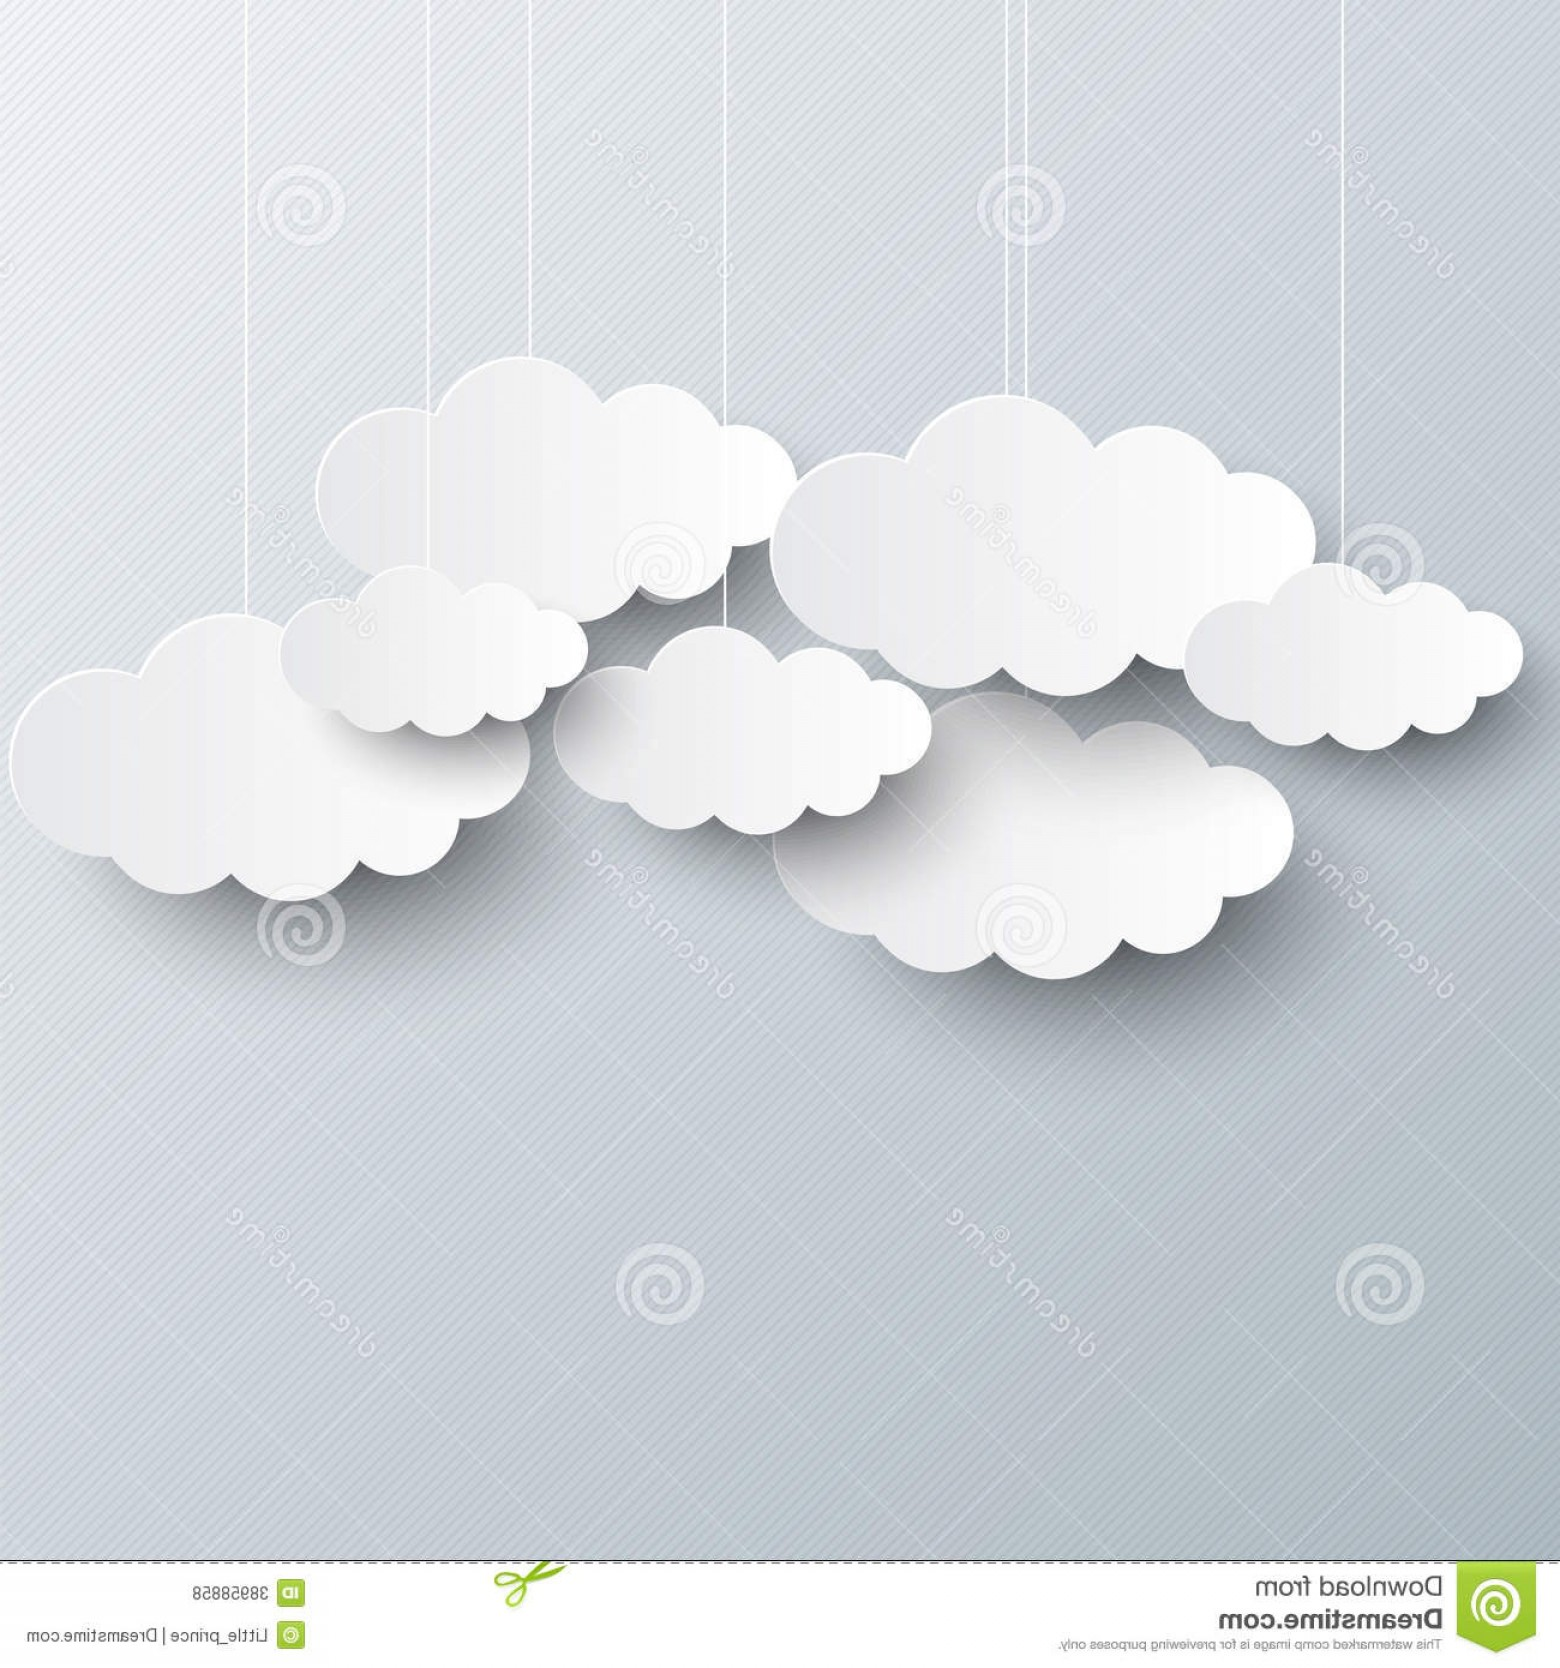 Clouds Backgrounds Vector: Royalty Free Stock Photos White Clouds Gray Sky Background Template Image